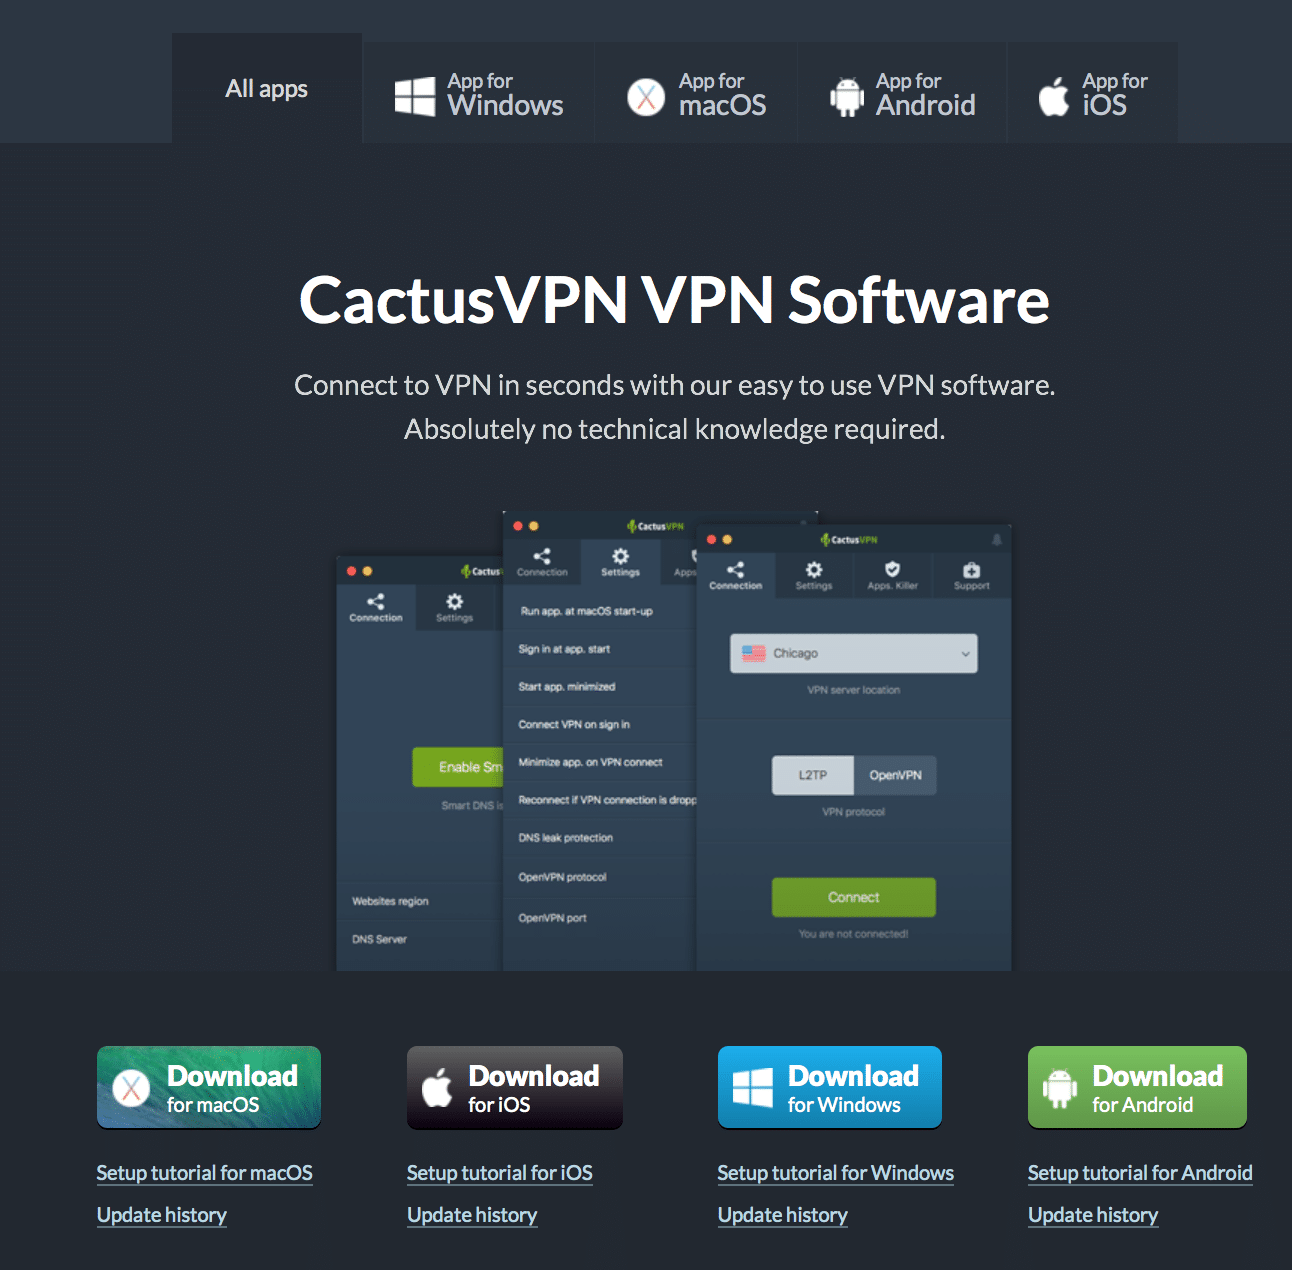 CactusVPN VPN software